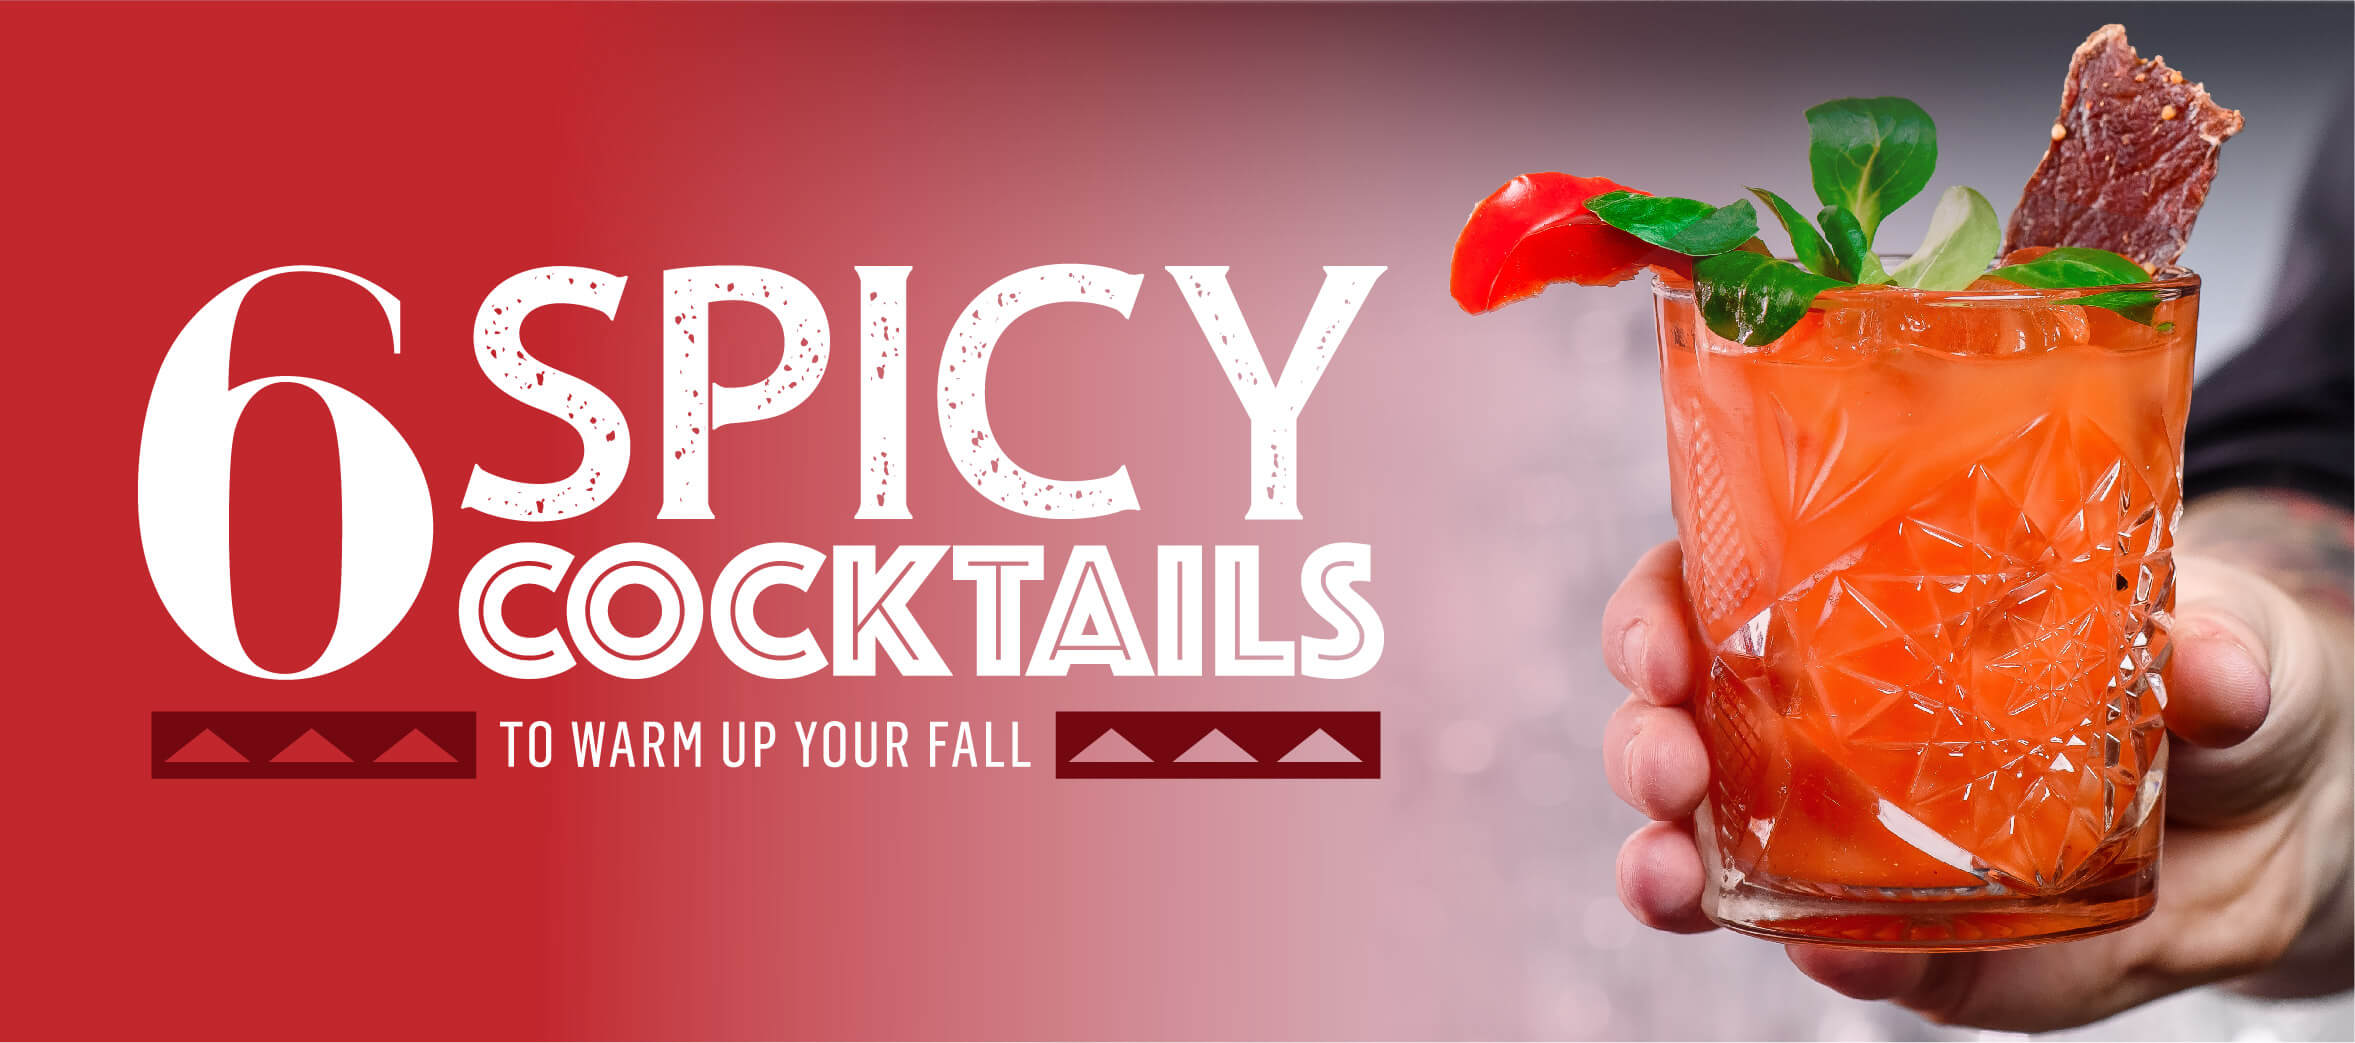 6-spicy-cocktails-header-en